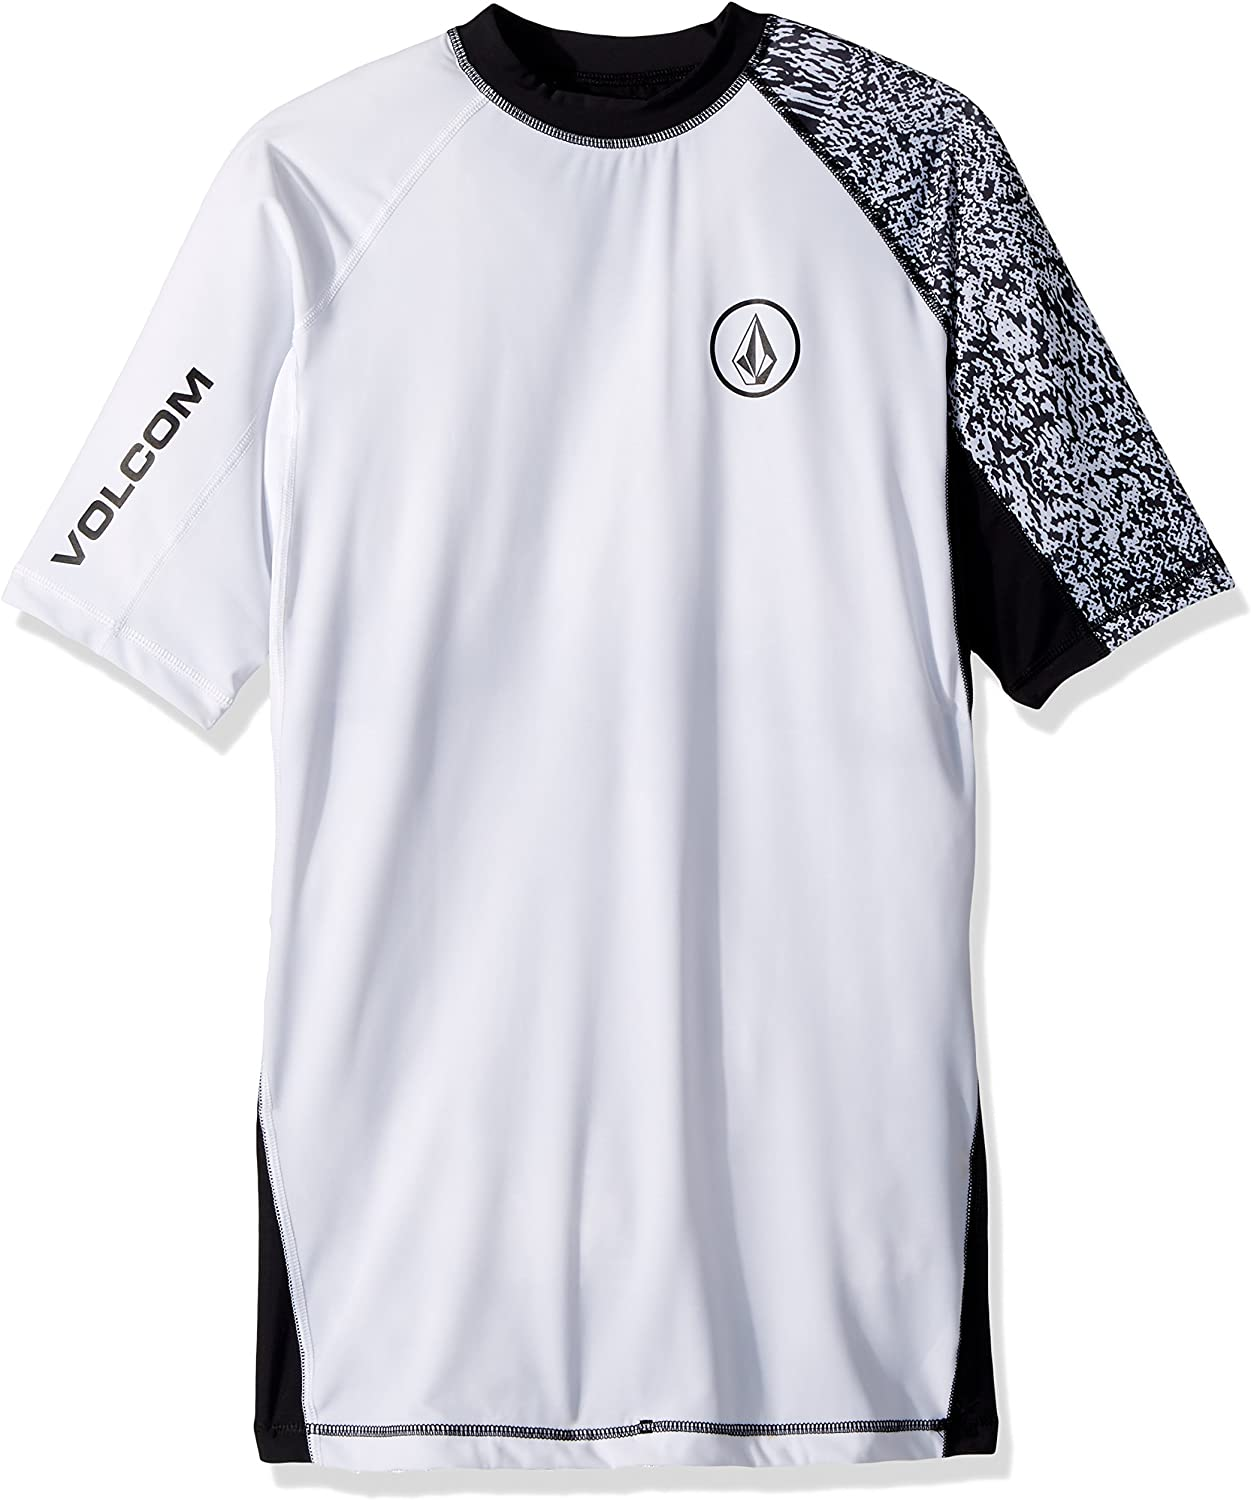 Volcom Men's Lido Block Short Sleeve Rashguard